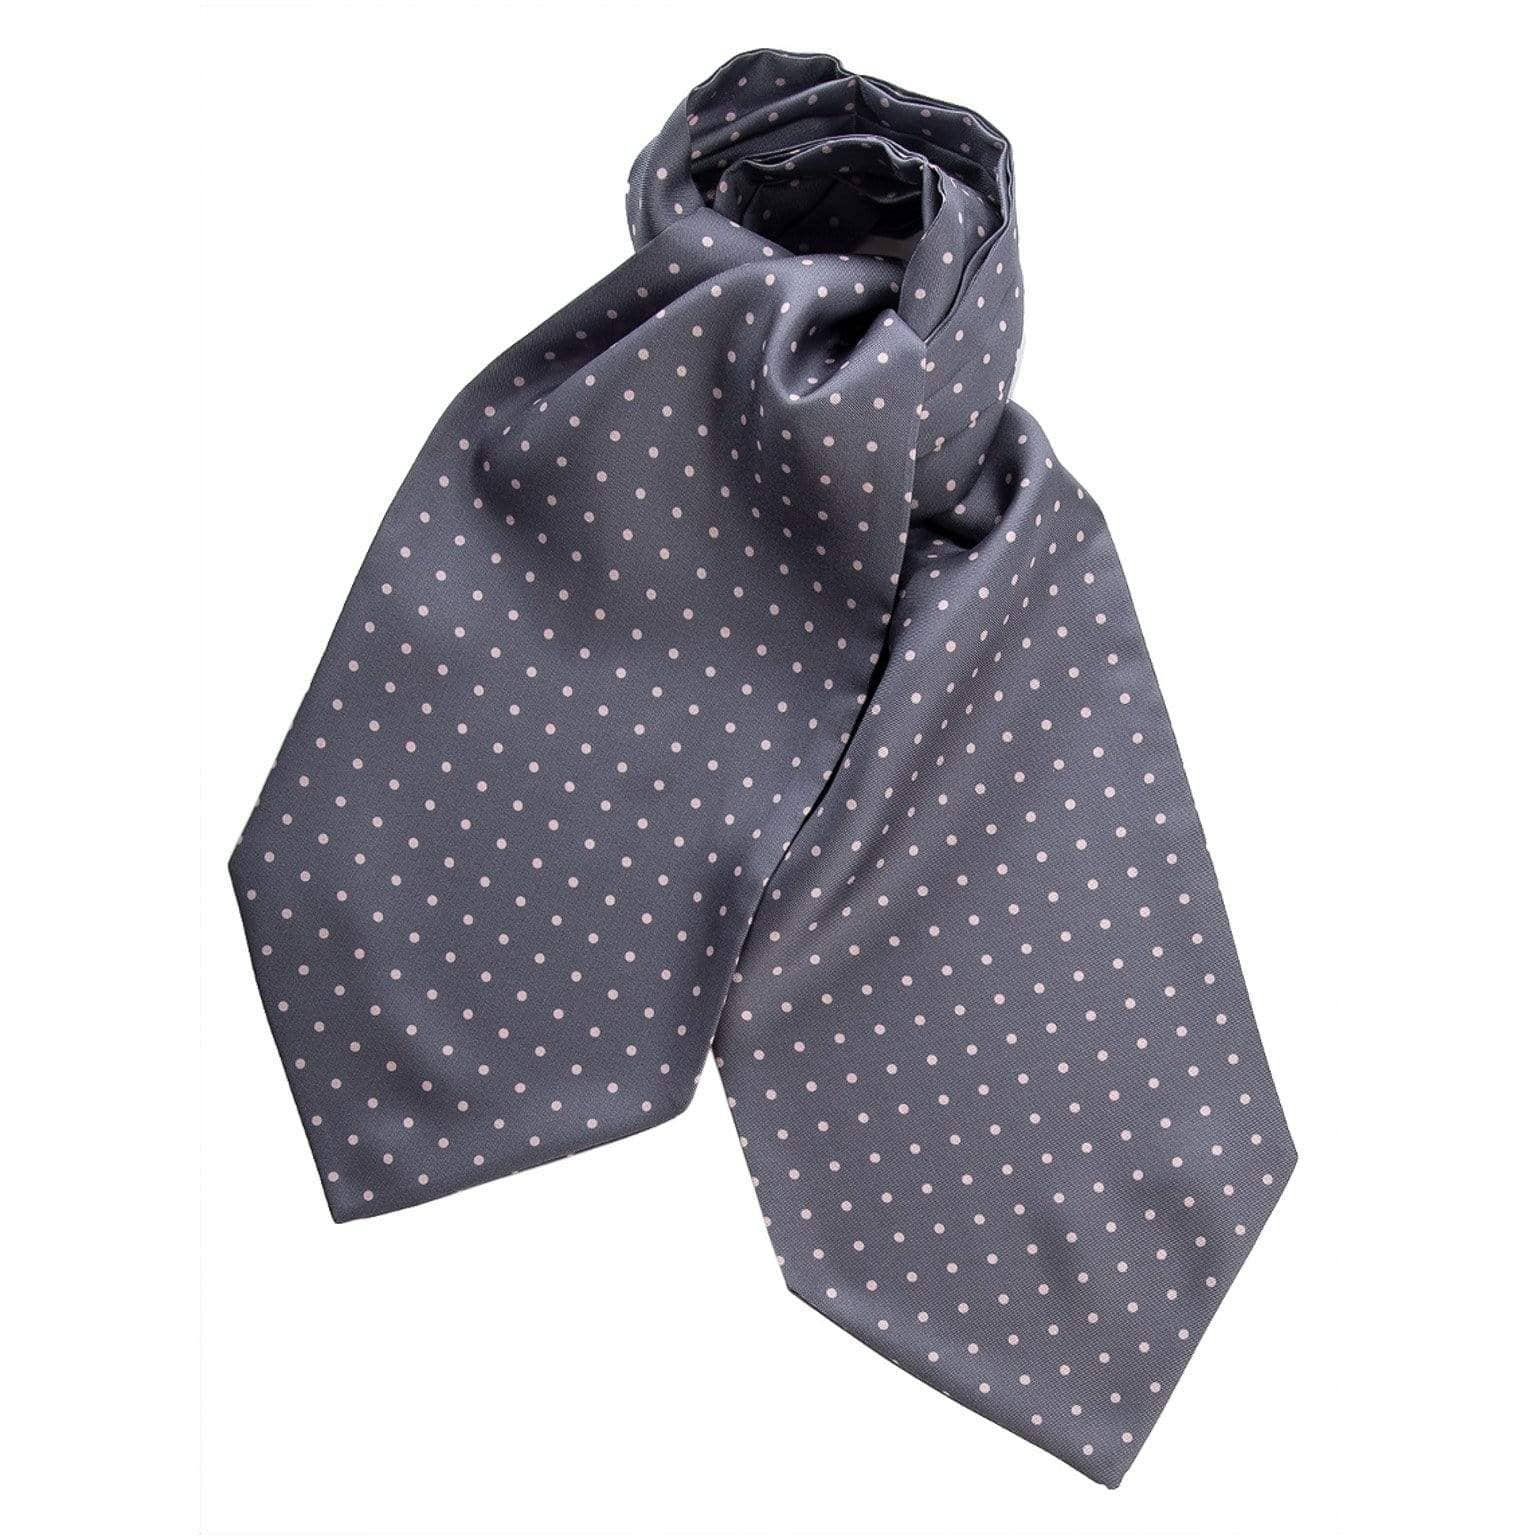 Silk Ascot Cravat Tie - Gray Polka Dot - Made in Italy